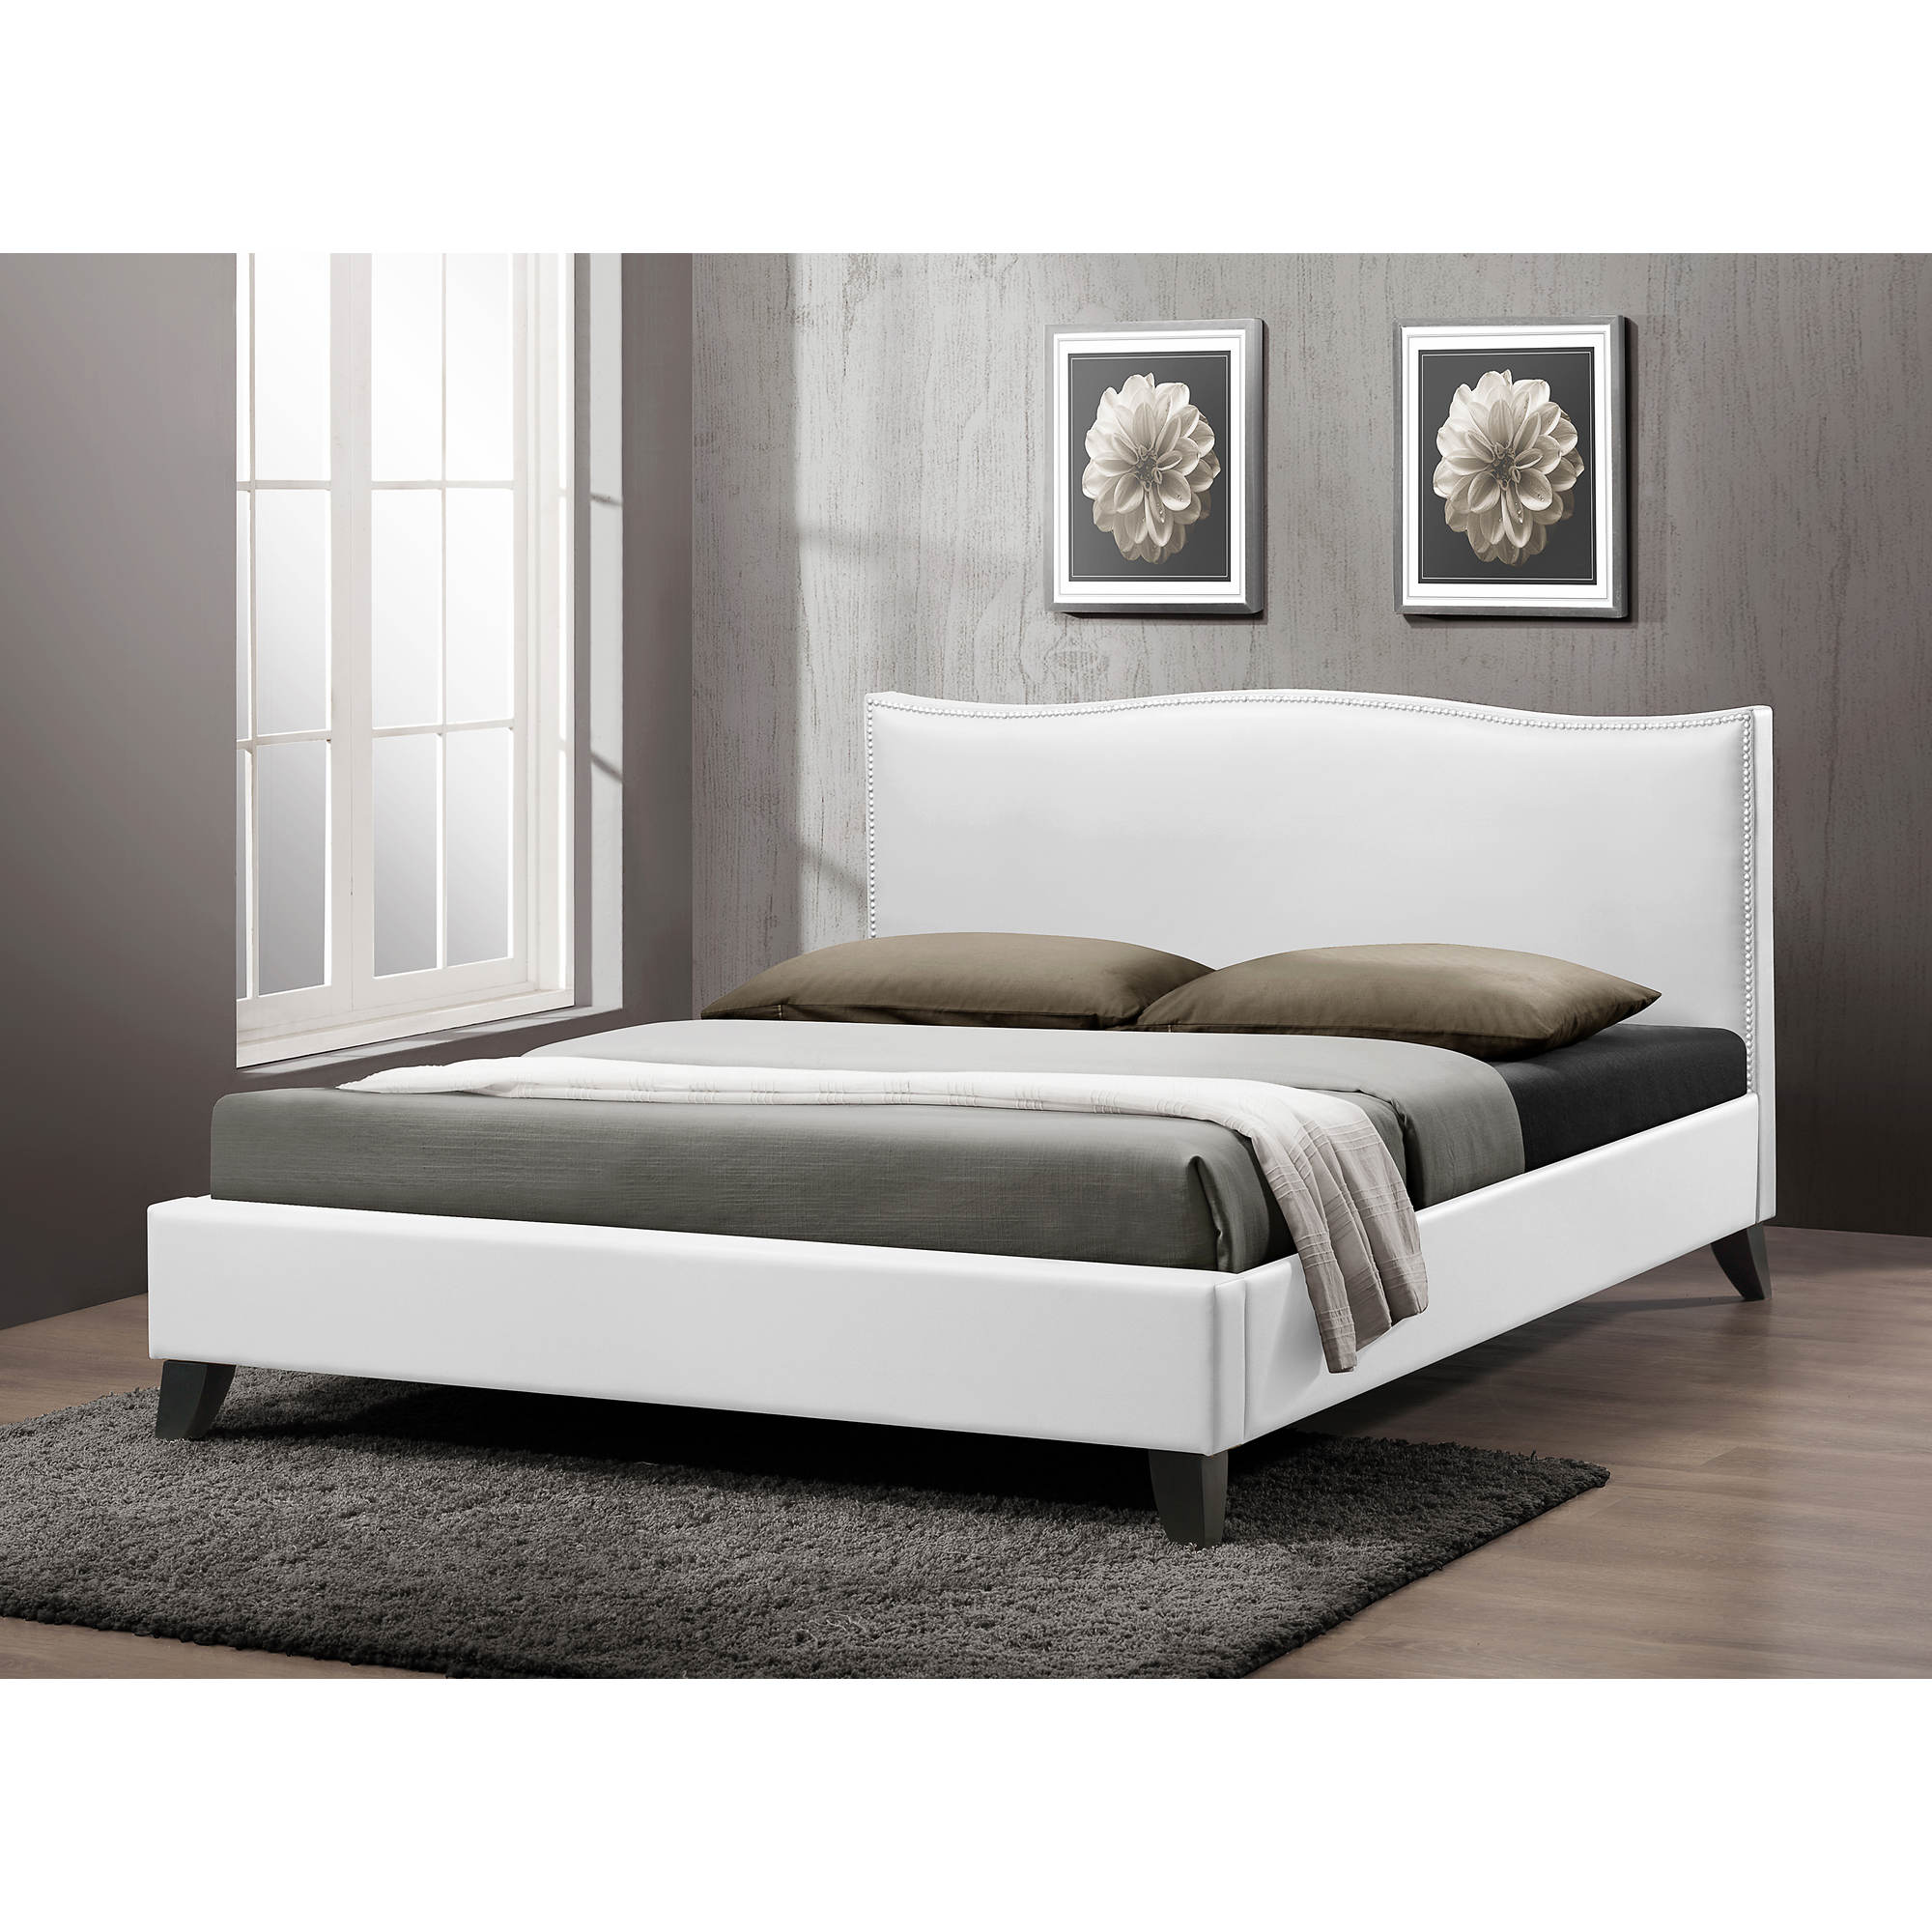 baxton studio battersby full size bed with upholstered headboard white